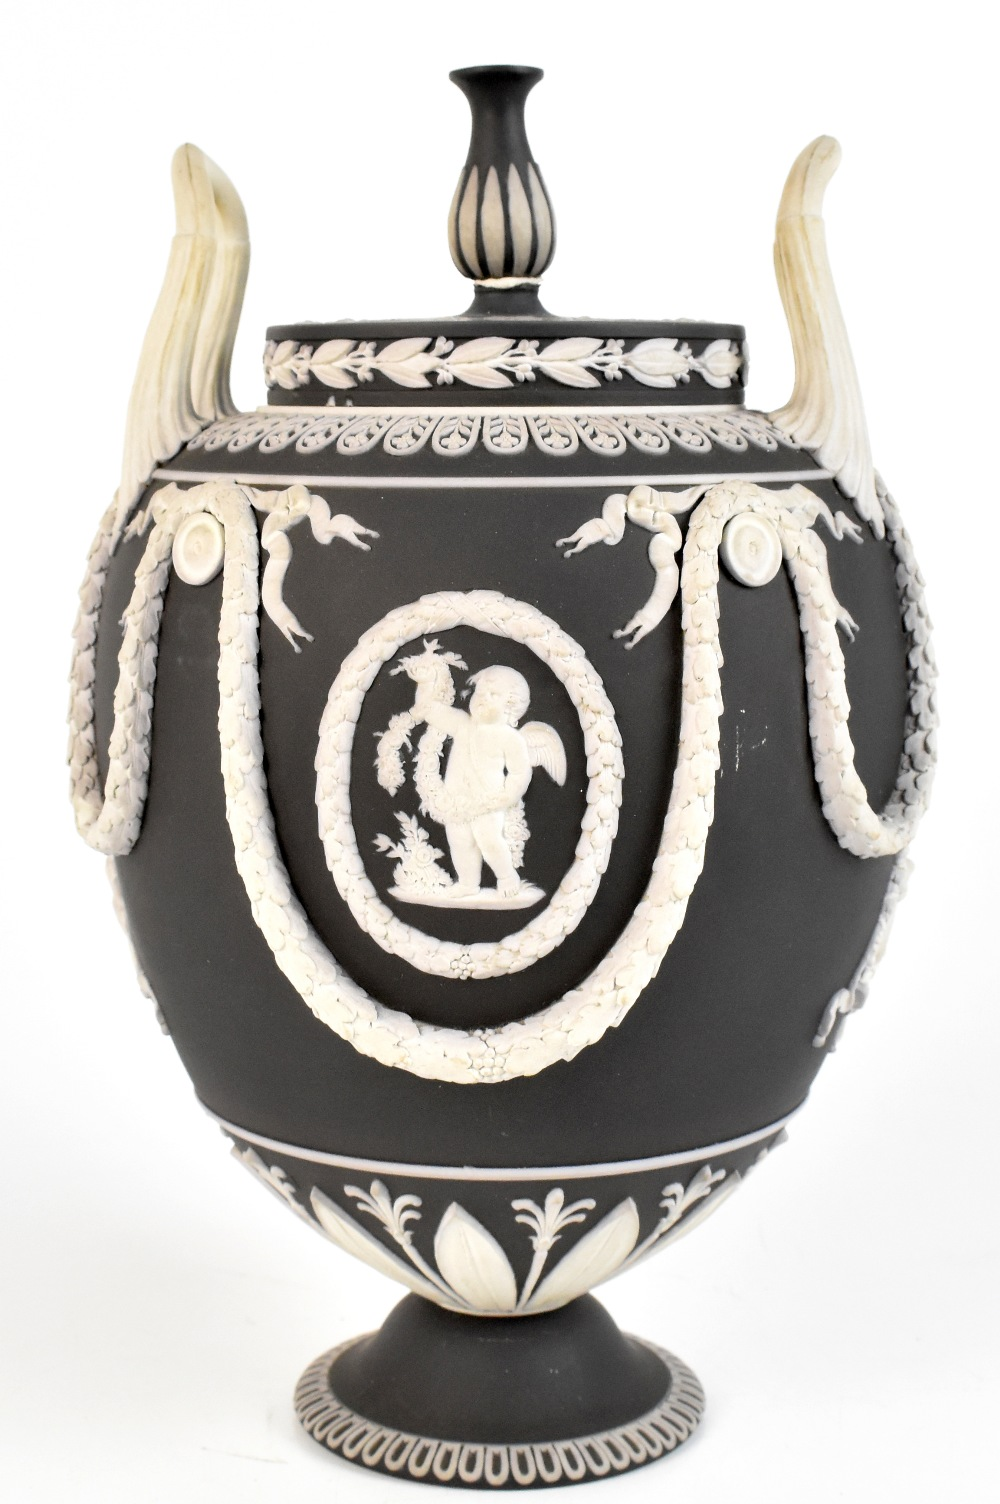 WEDGWOOD; a good 19th century large black and white jasper dip jar and cover with high looped